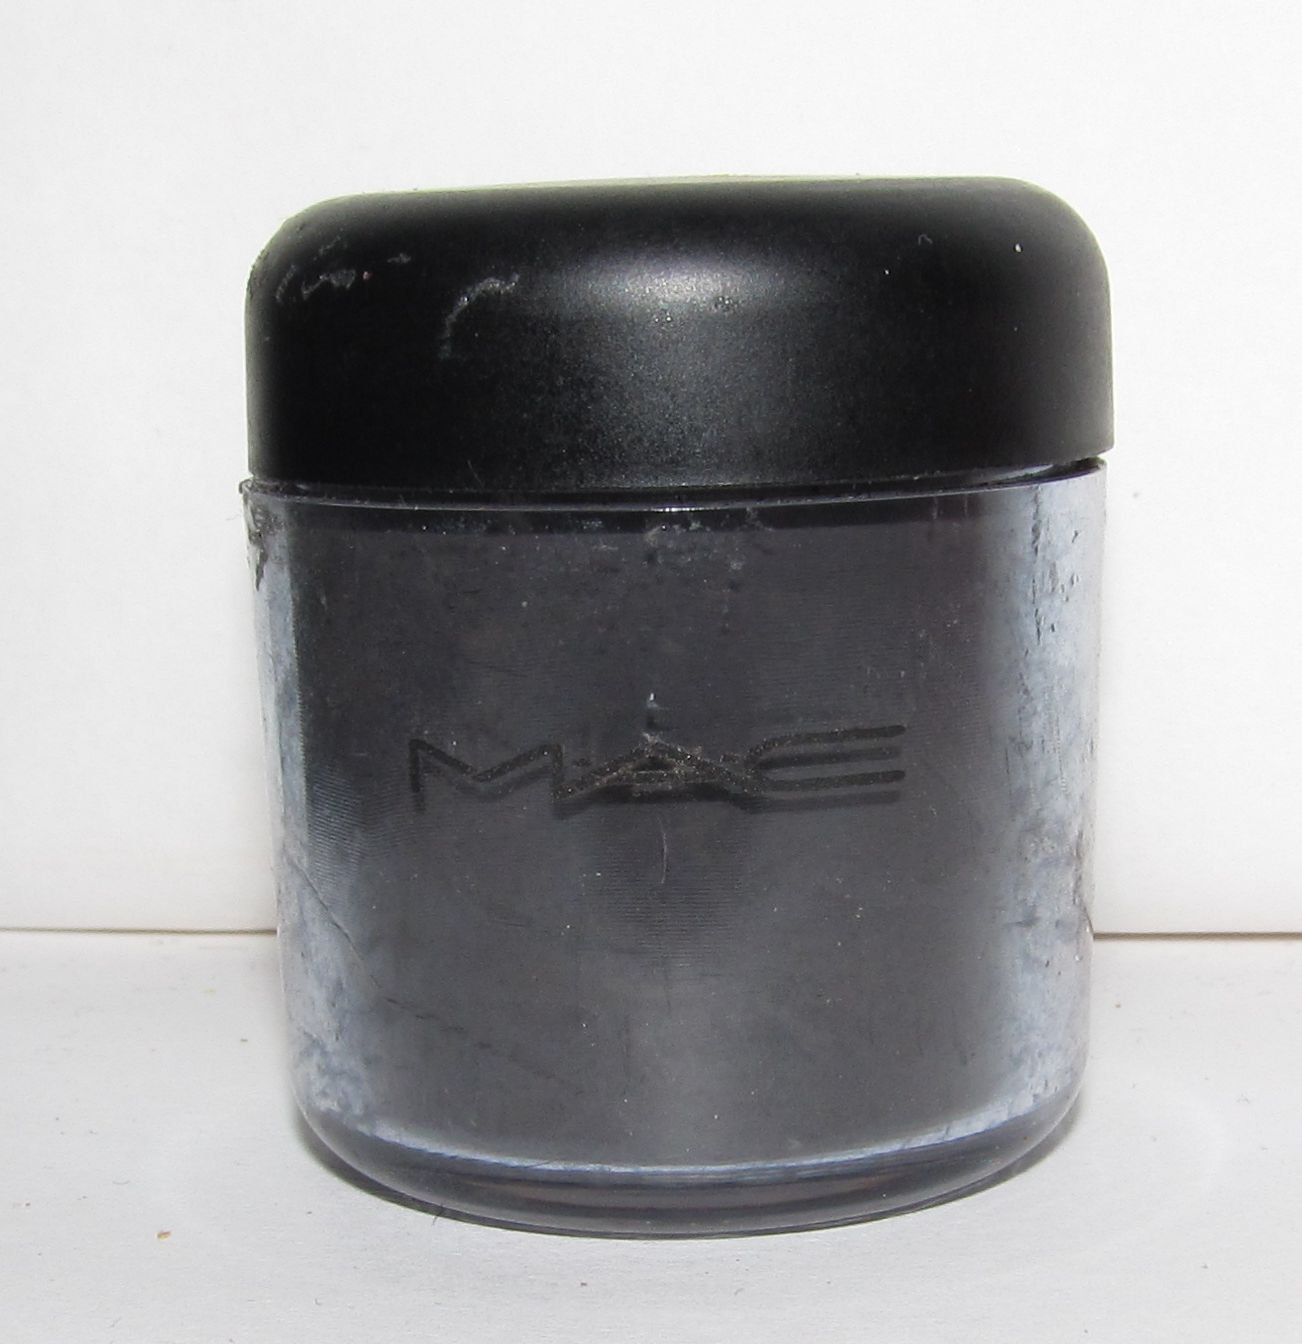 MAC - Black Black 1/4 tsp Pigment Sample w/Original Older Style Jar